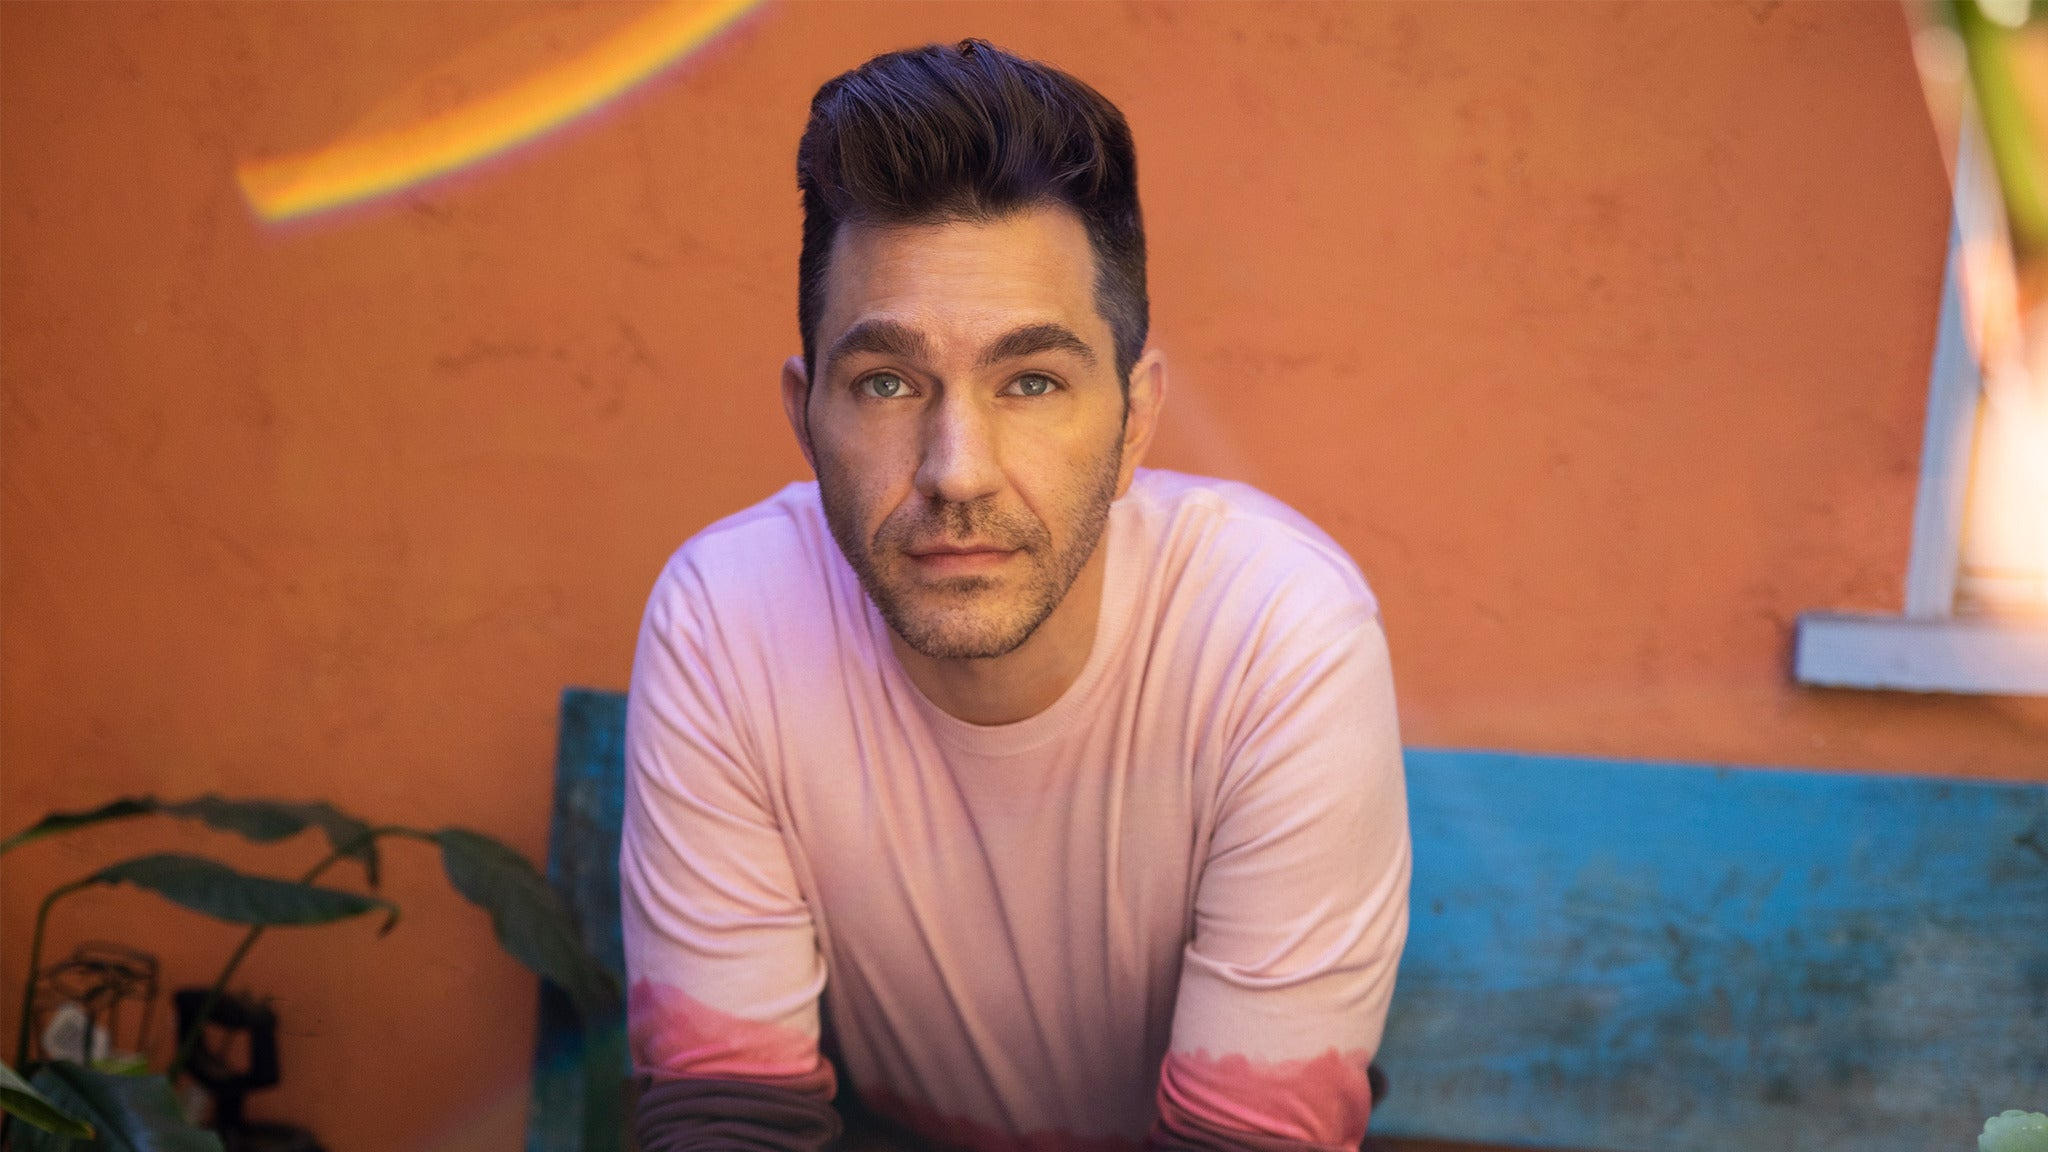 Andy Grammer - the Art of Joy Tour presale code